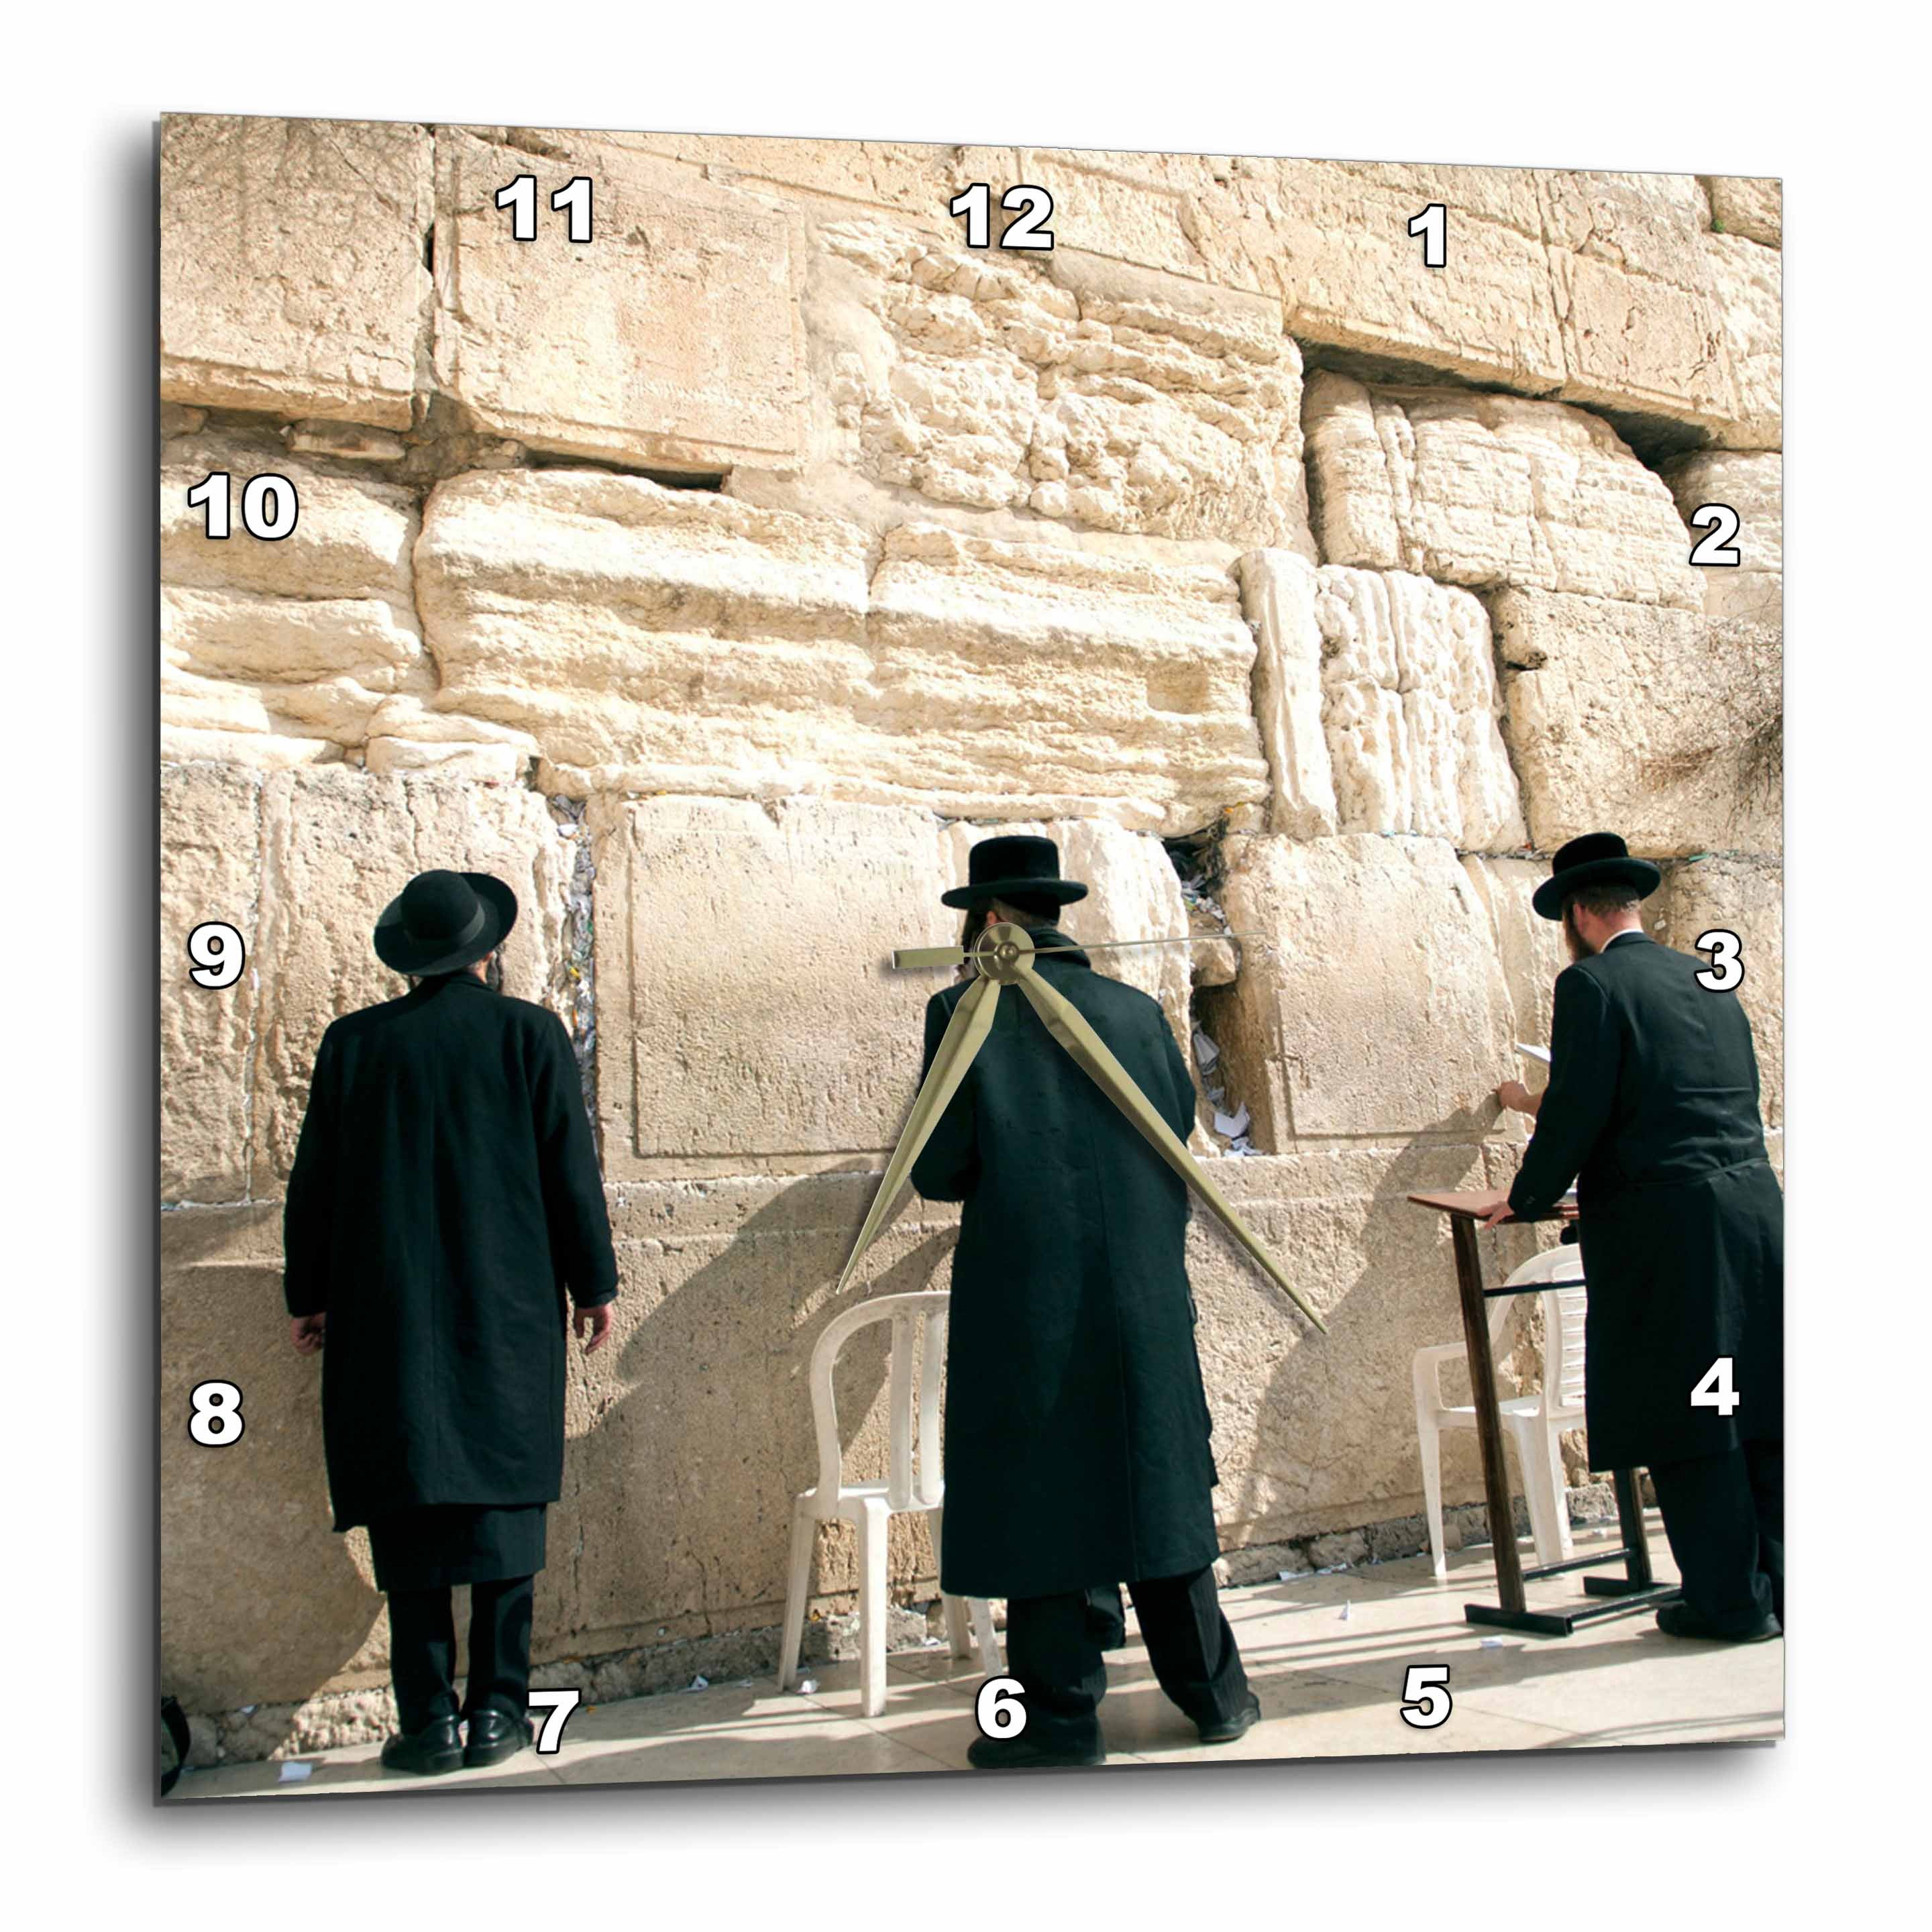 3dRose Israel, Jerusalem, Orthodox men pray, Western Wall - AS14 DNY0031 - David Noyes, Wall Clock, 13 by 13-inch